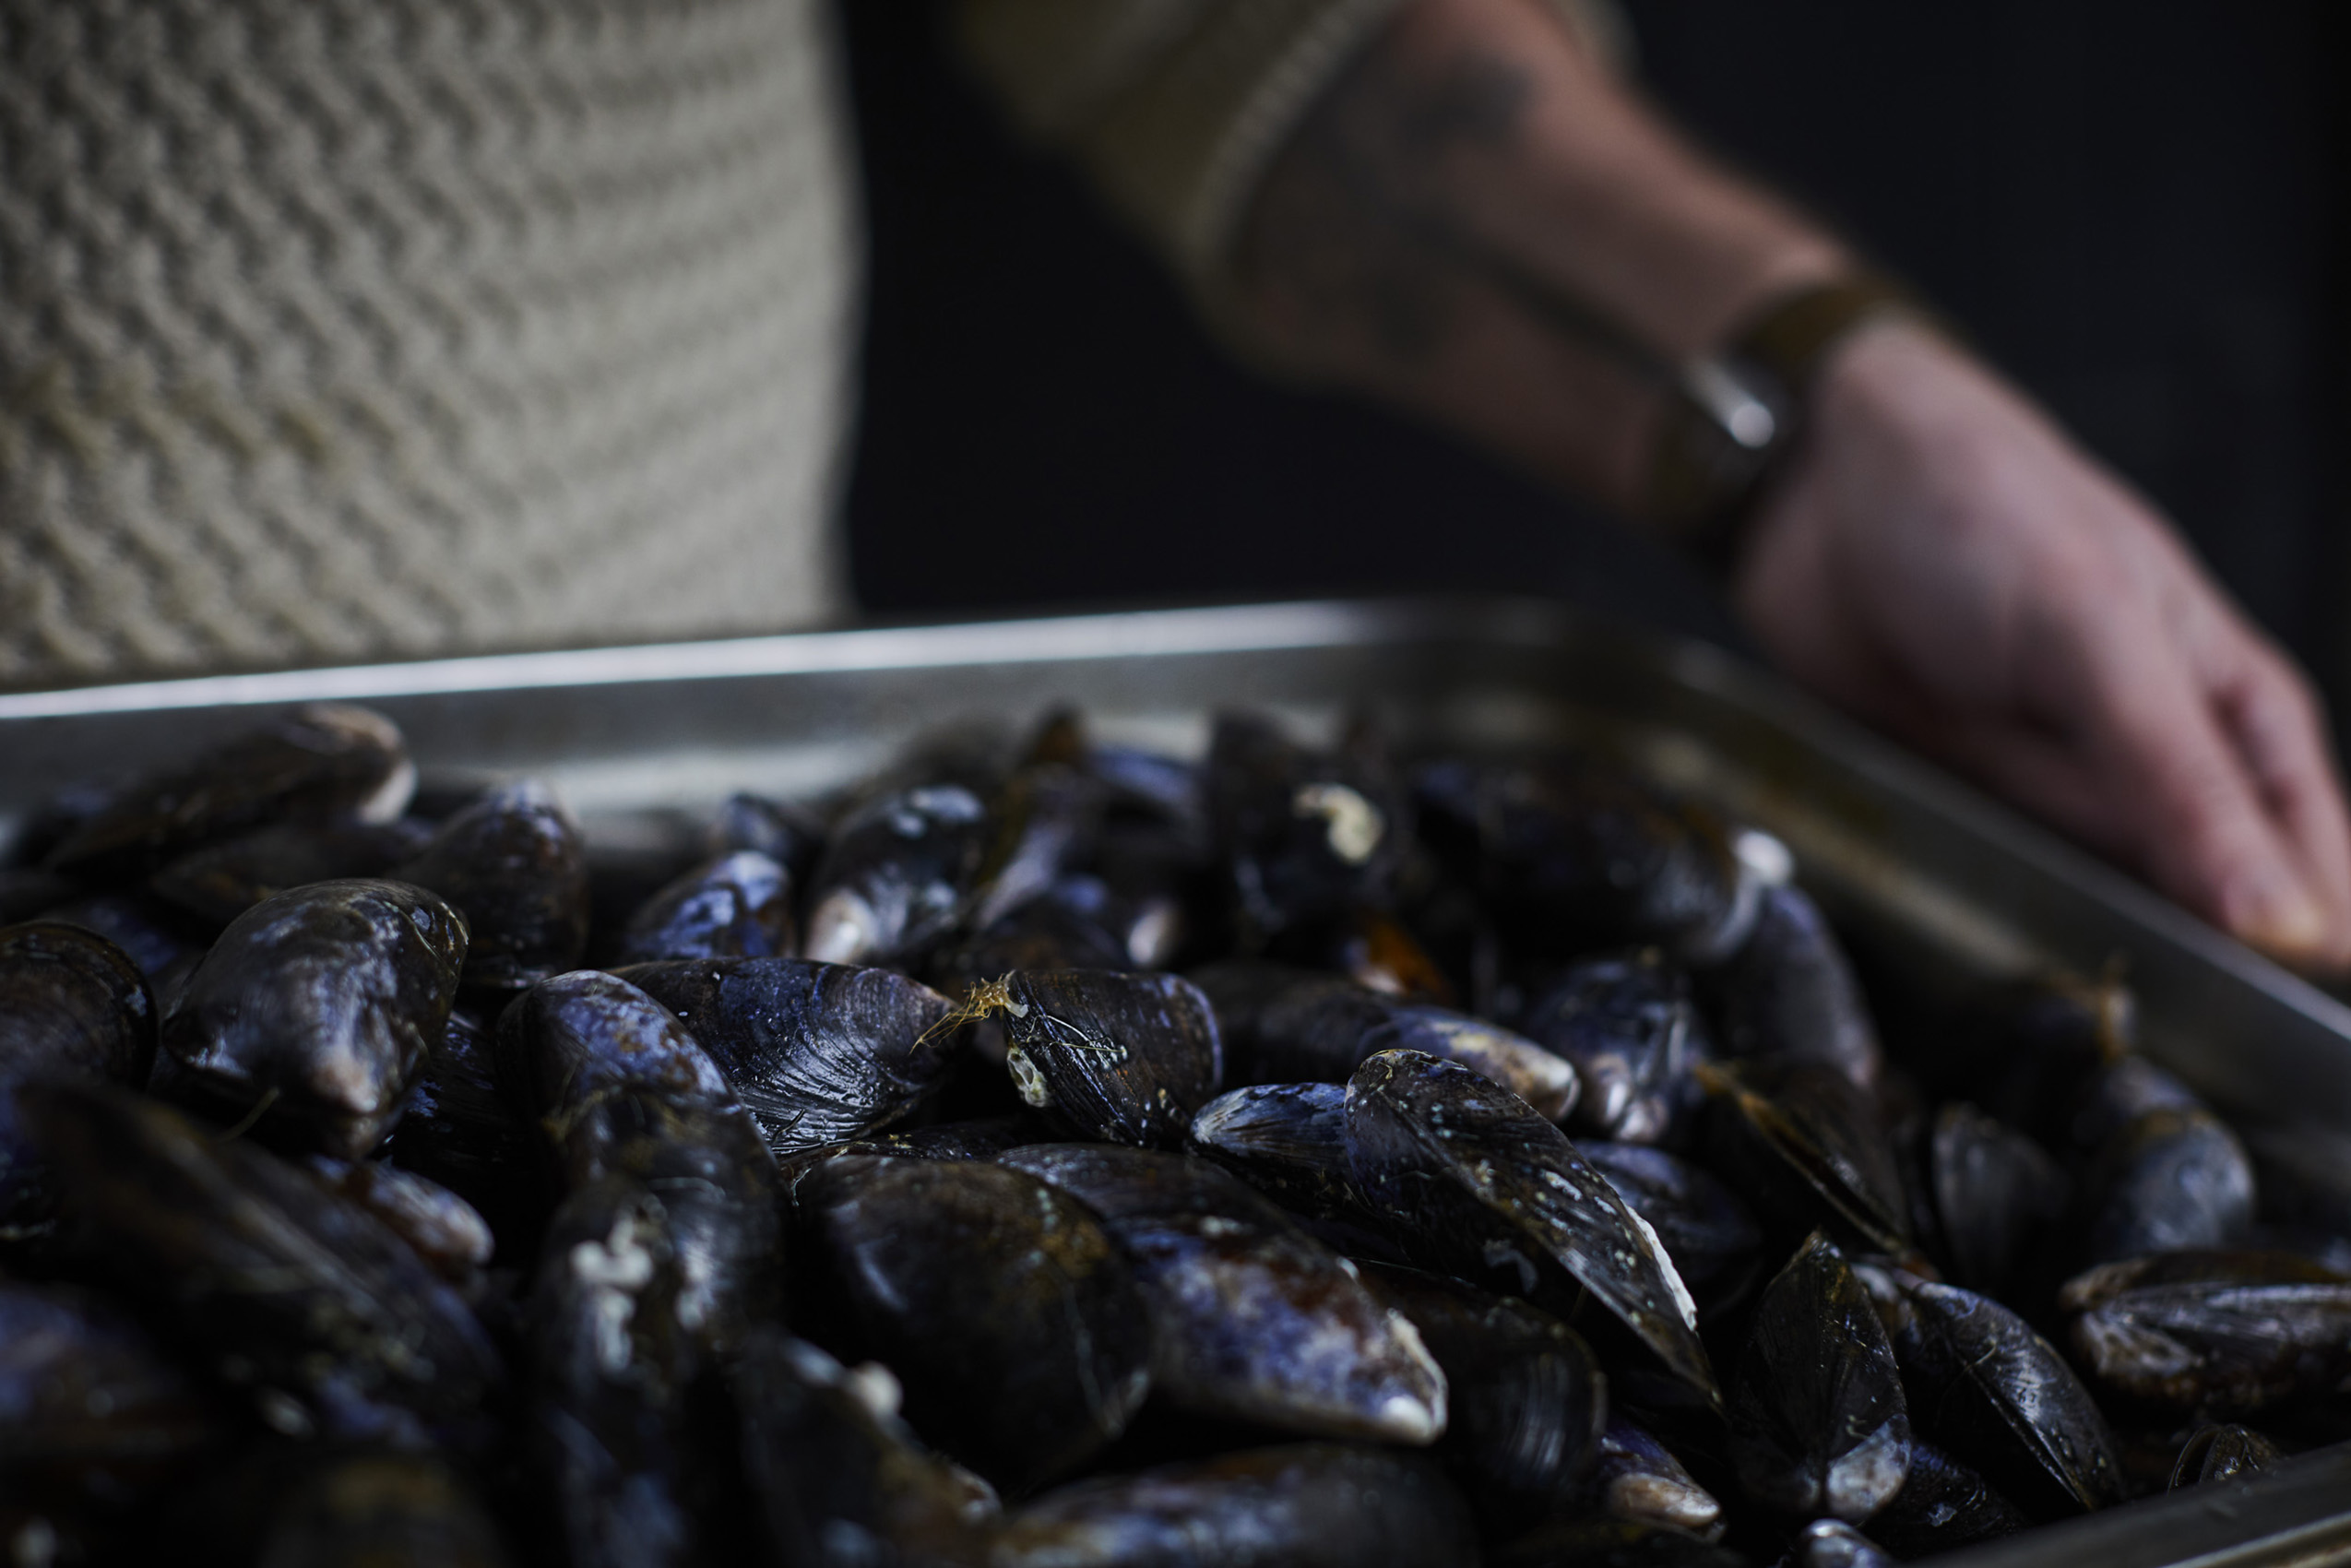 SteveRyan_Photographer_Ingredients_Produce_Fish_Mussels_09